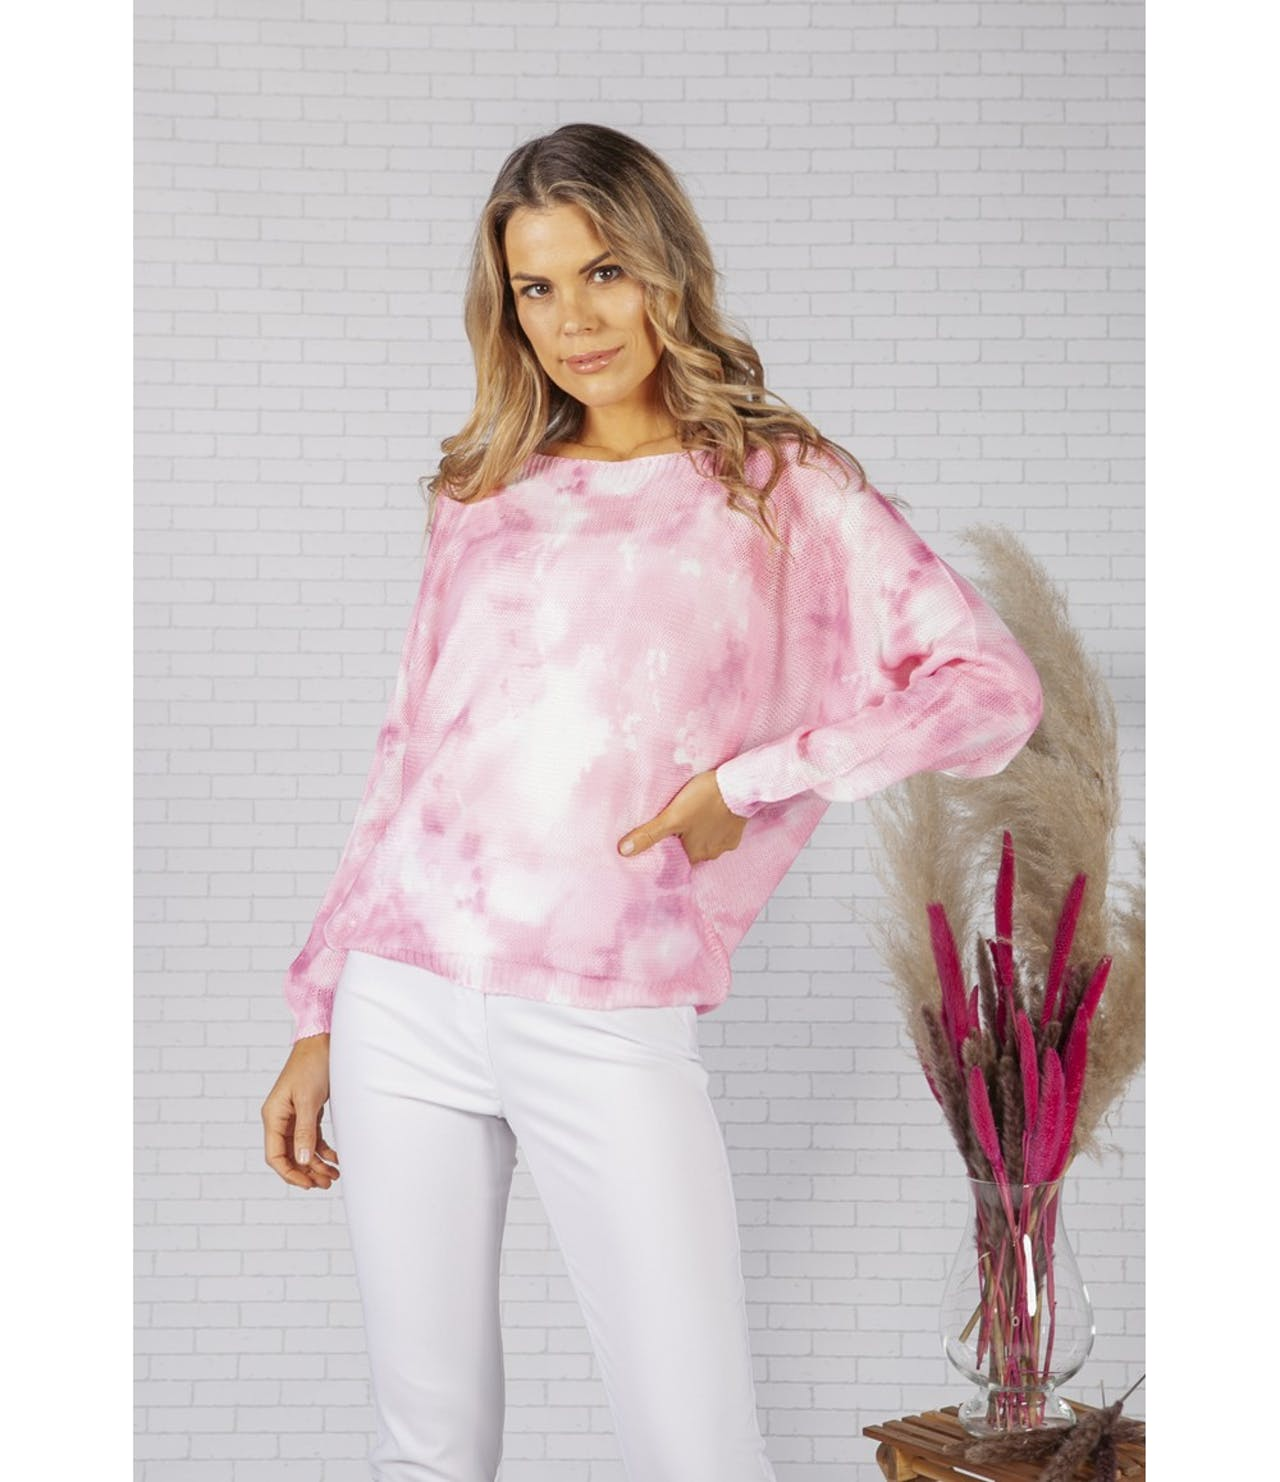 Zapara LIGHTWEIGHT CROPPED TIE DYE KNIT PULLOVER IN CLOUDED PINK